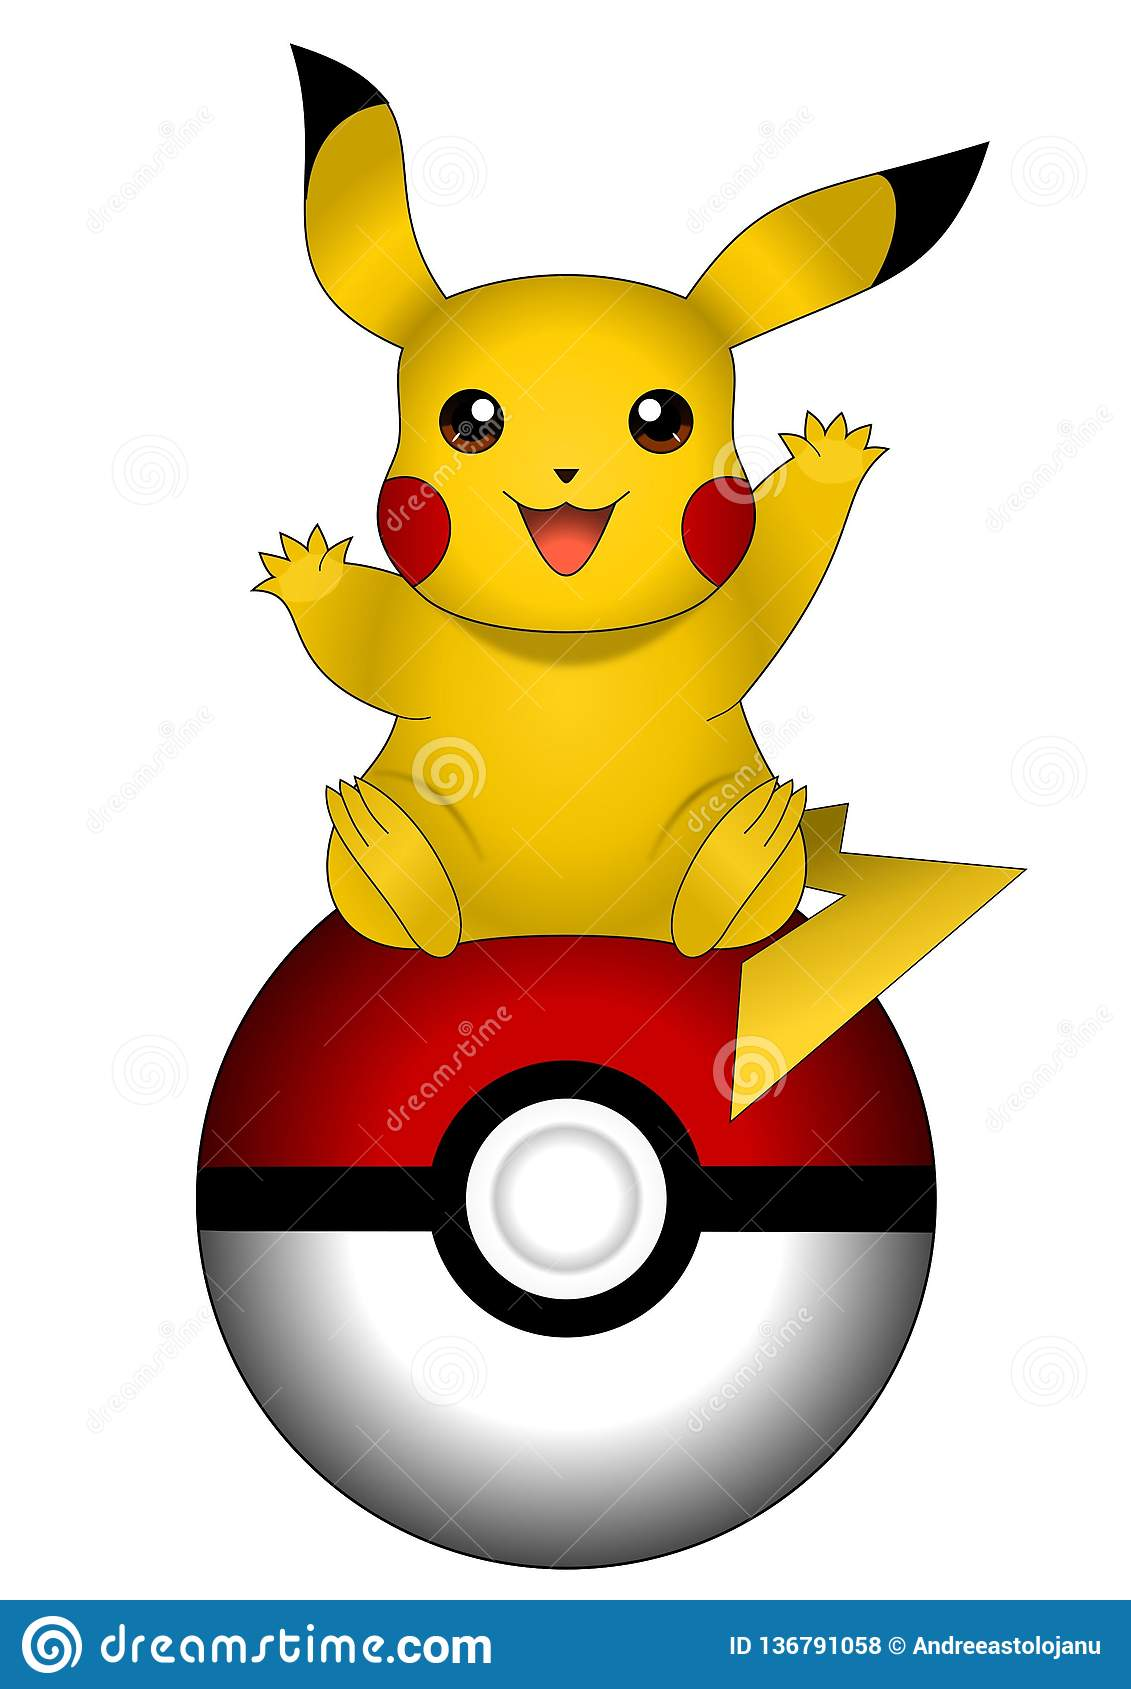 Pikachu Cartoons, Illustrations & Vector Stock Images - 62 ...